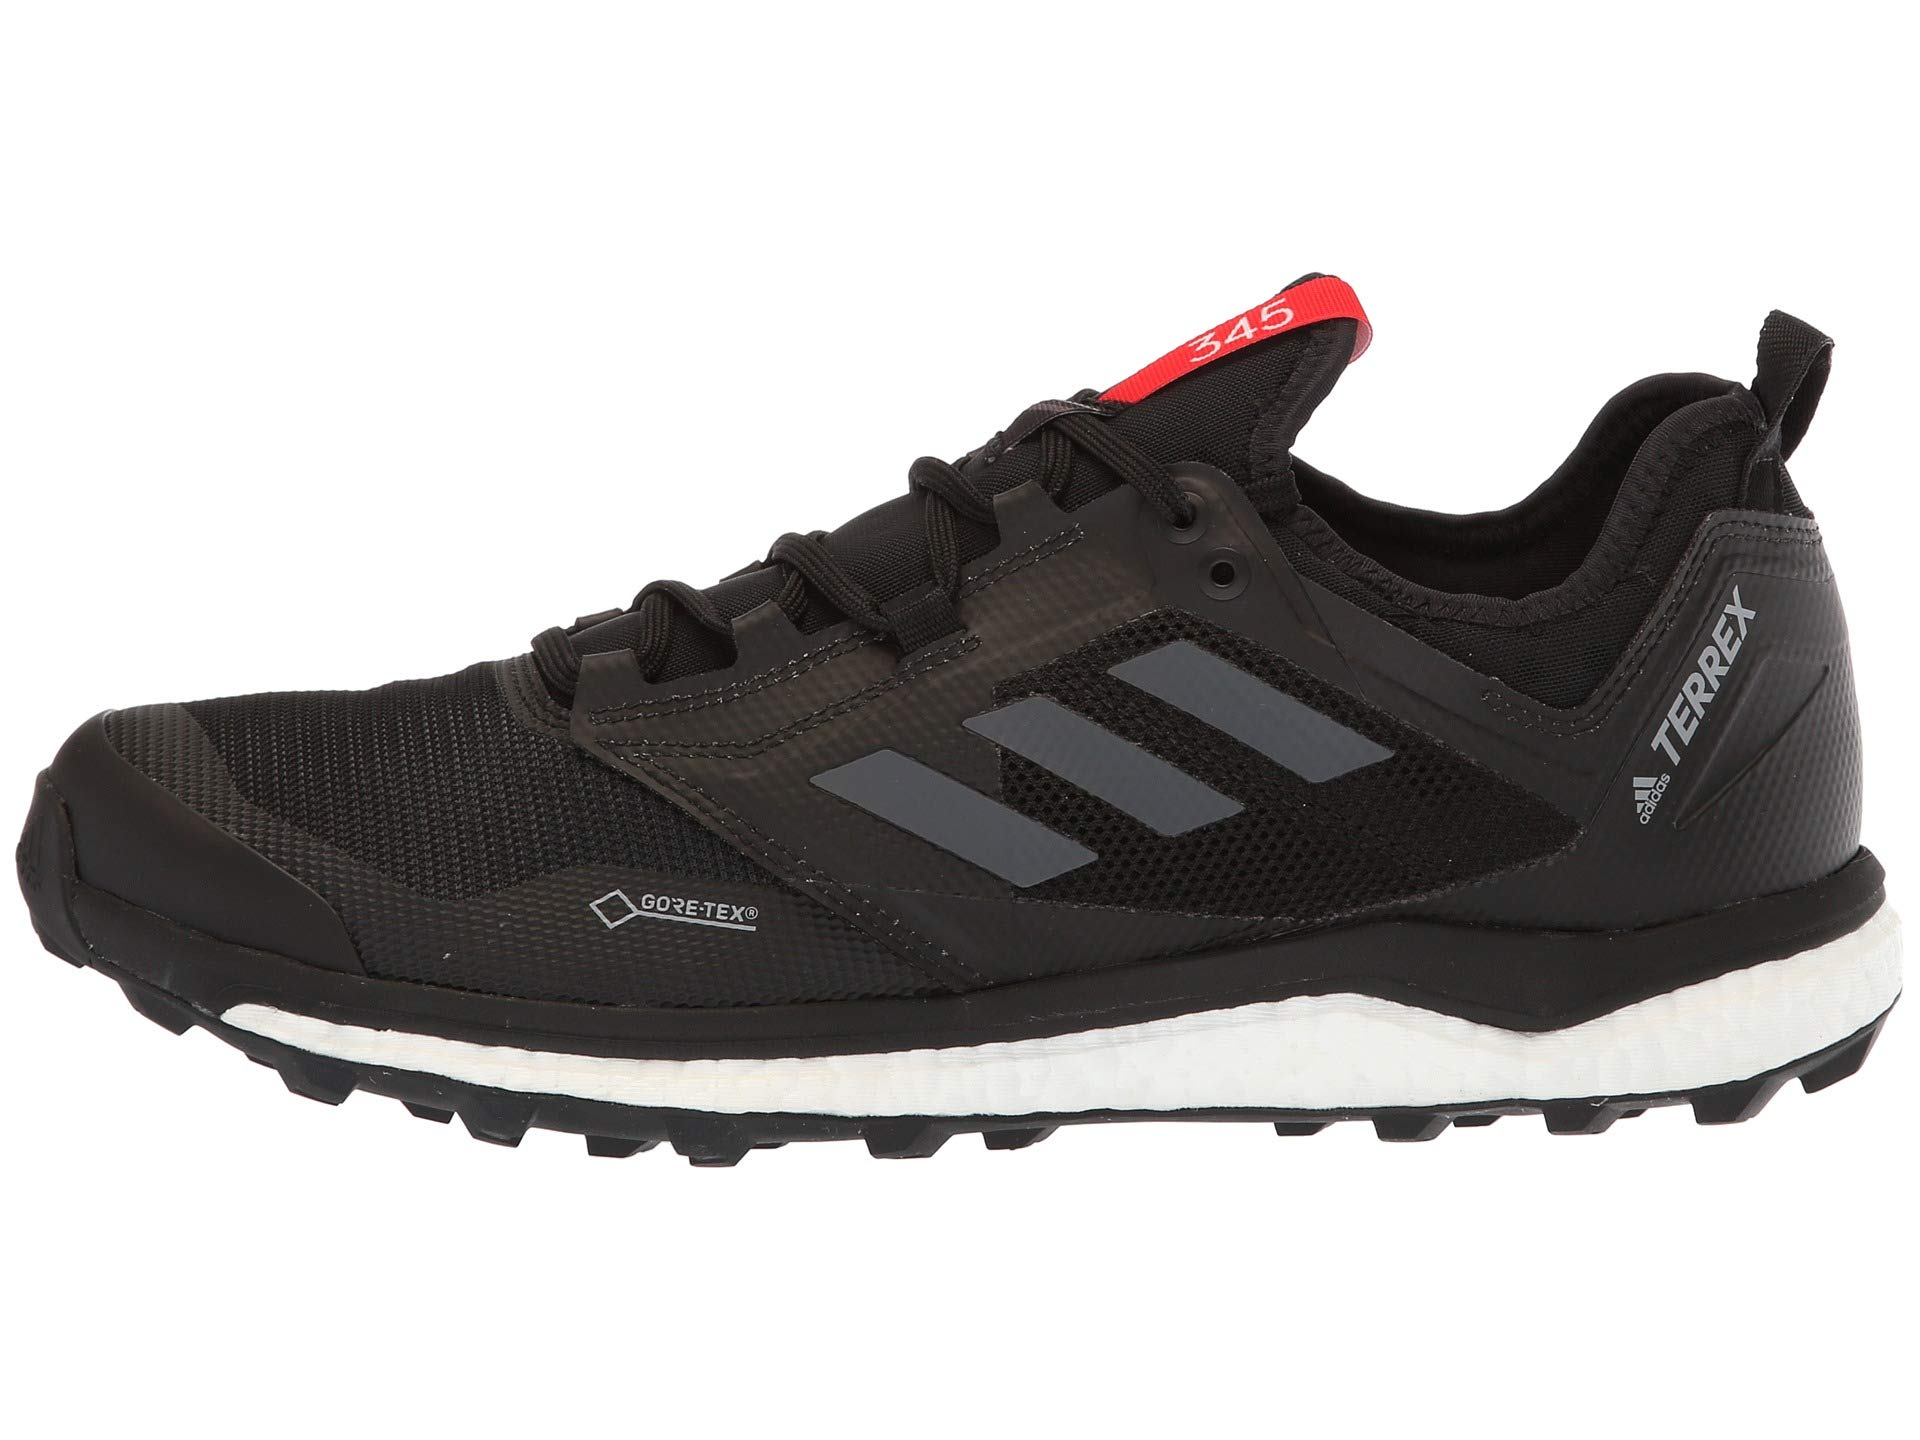 647c3cf83 Best Adidas Running Shoes